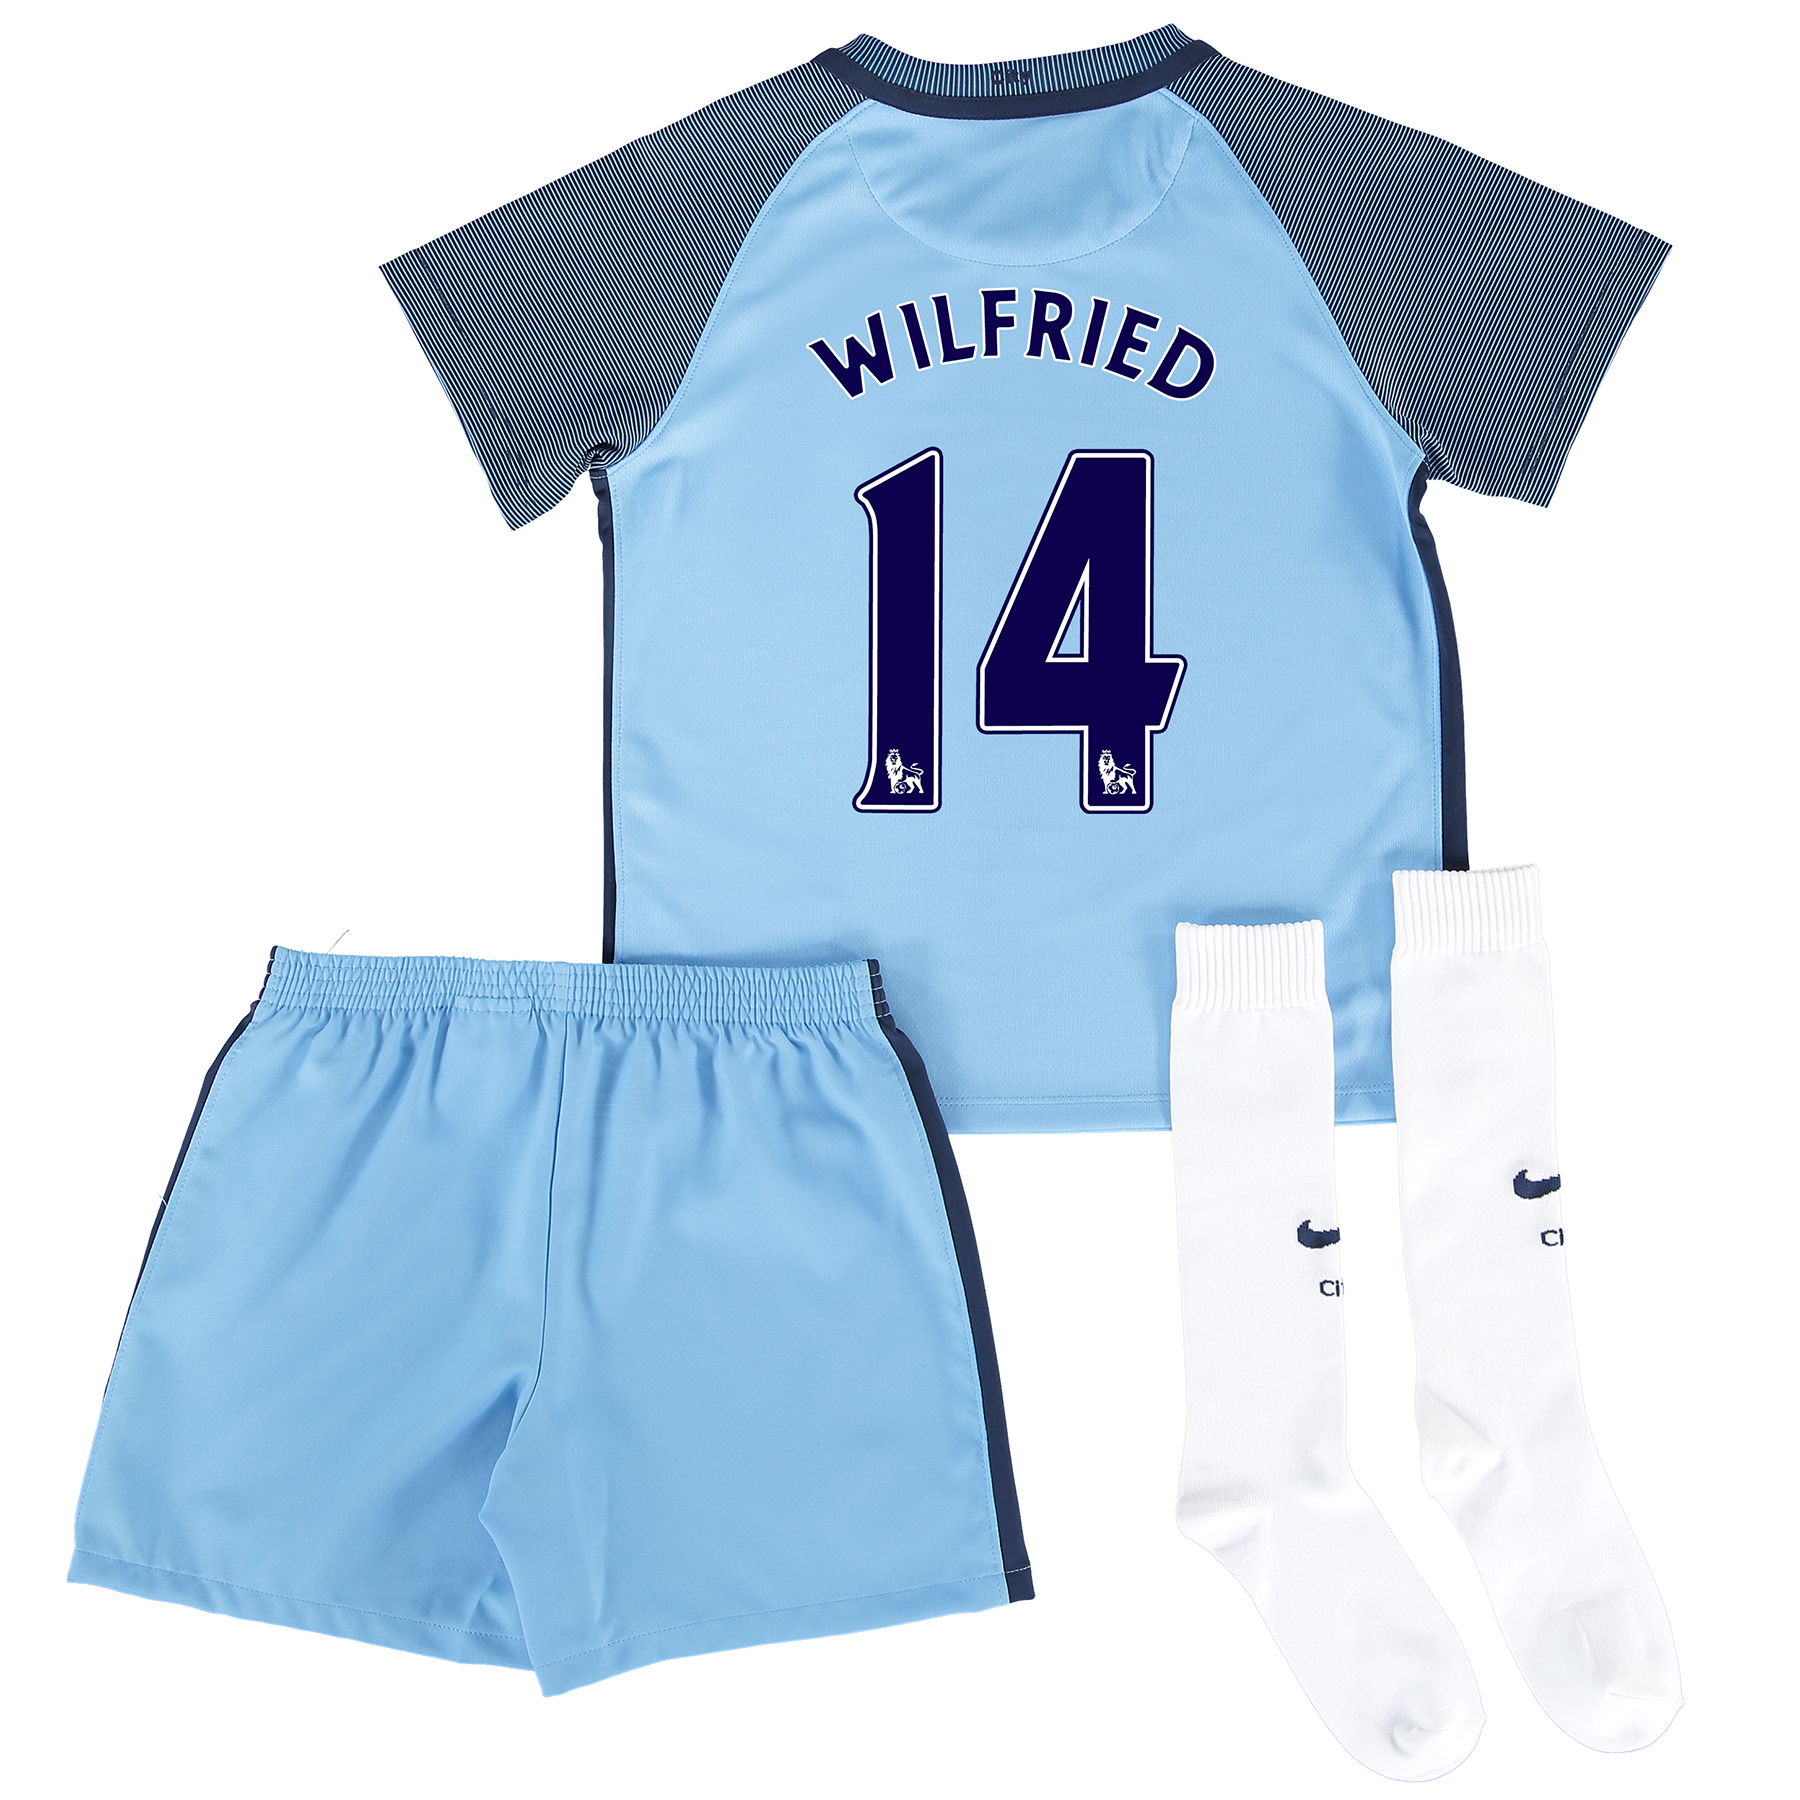 Manchester City Home Kit 2016-17 - Little Kids with Wilfried 14 printi